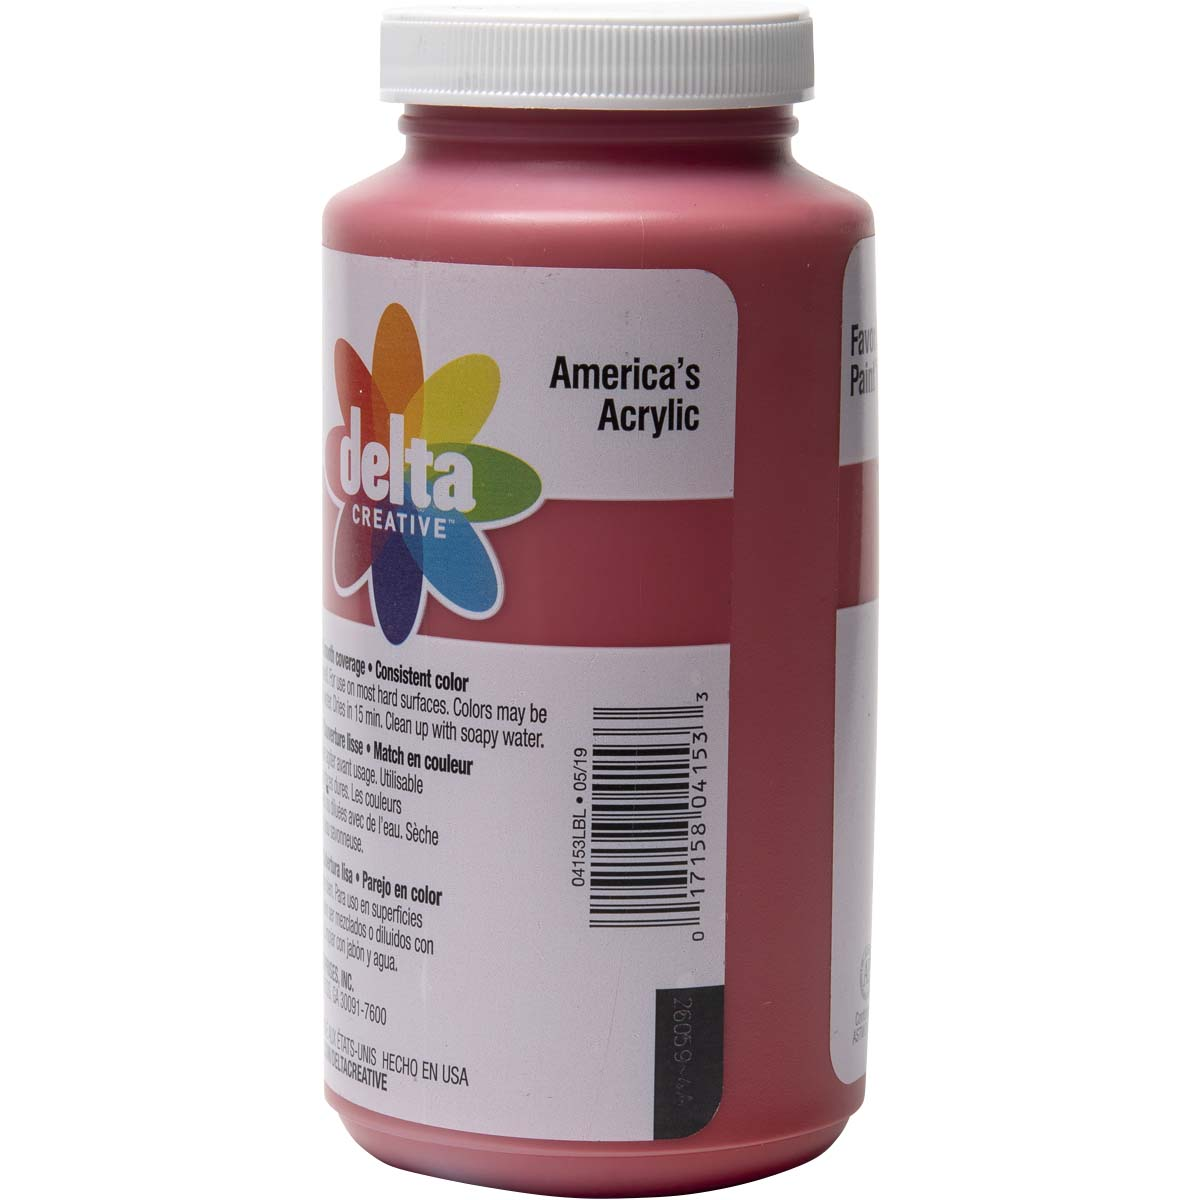 Delta Ceramcoat ® Acrylic Paint - Bright Red, 16 oz. - 04153